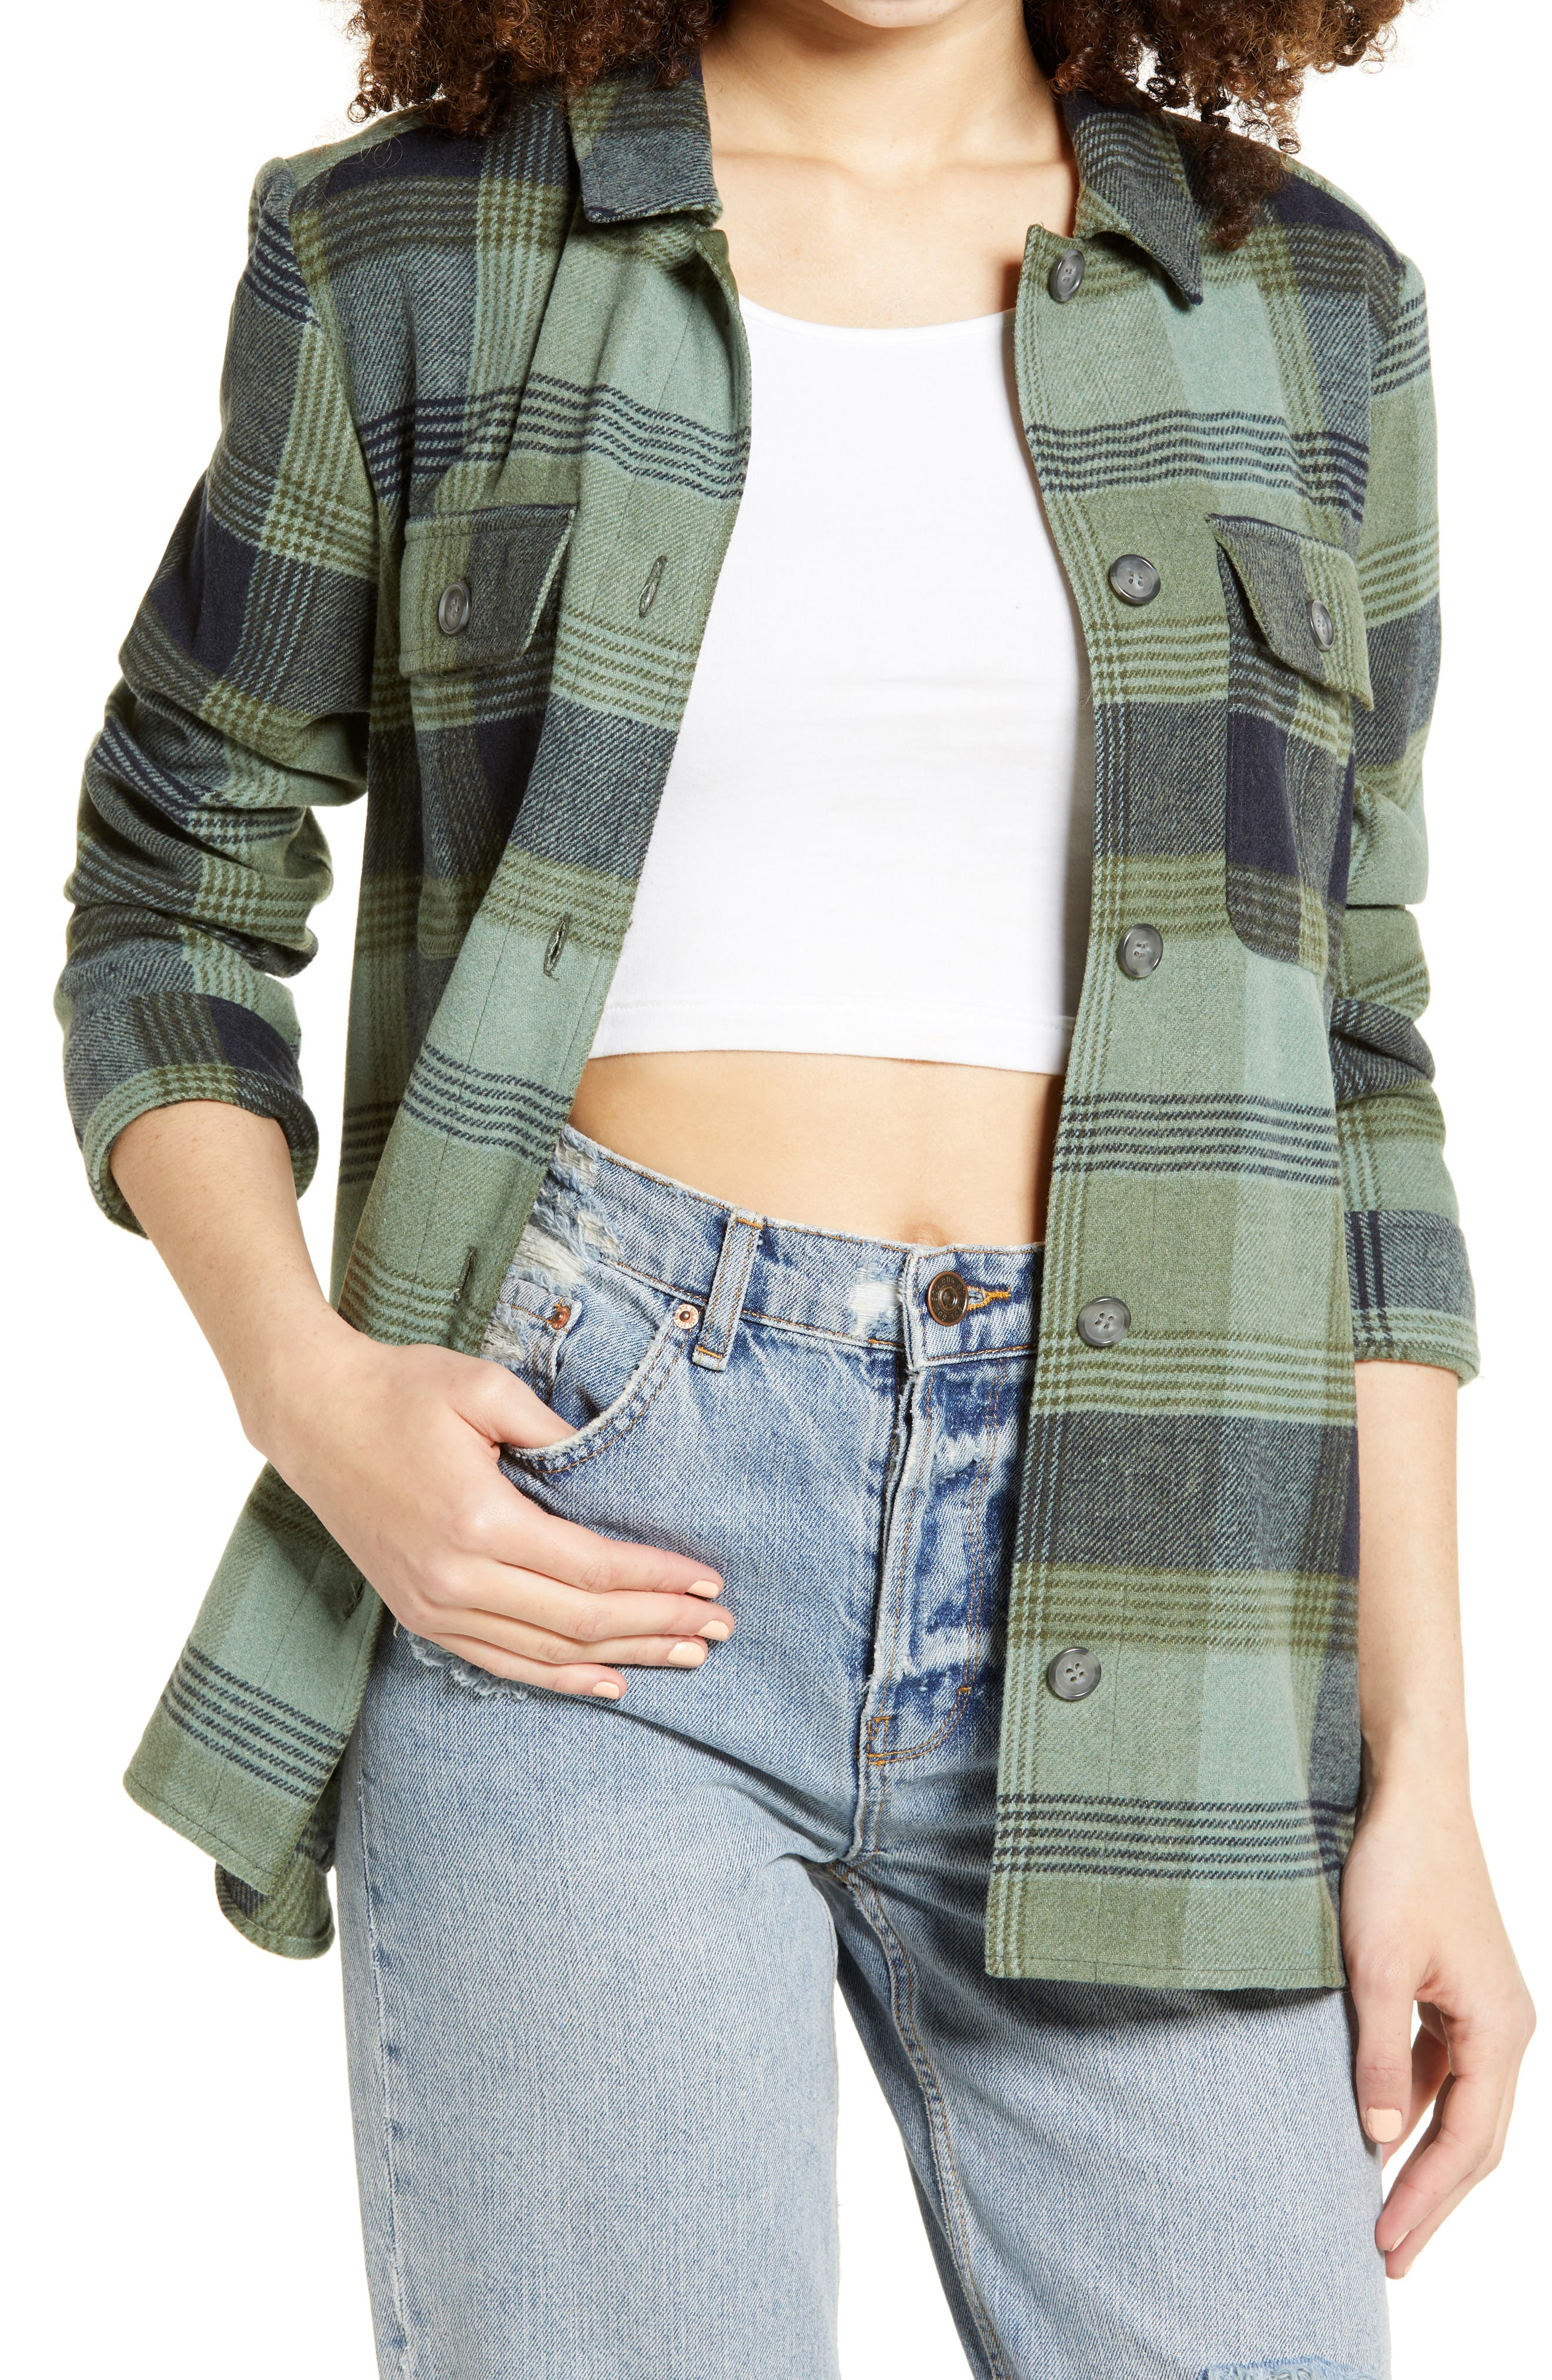 Vintage Tops & Retro Shirts, Halter Tops, Blouses Womens Bp. Plaid Flannel Shirt Jacket Size X-Small - Green $69.00 AT vintagedancer.com